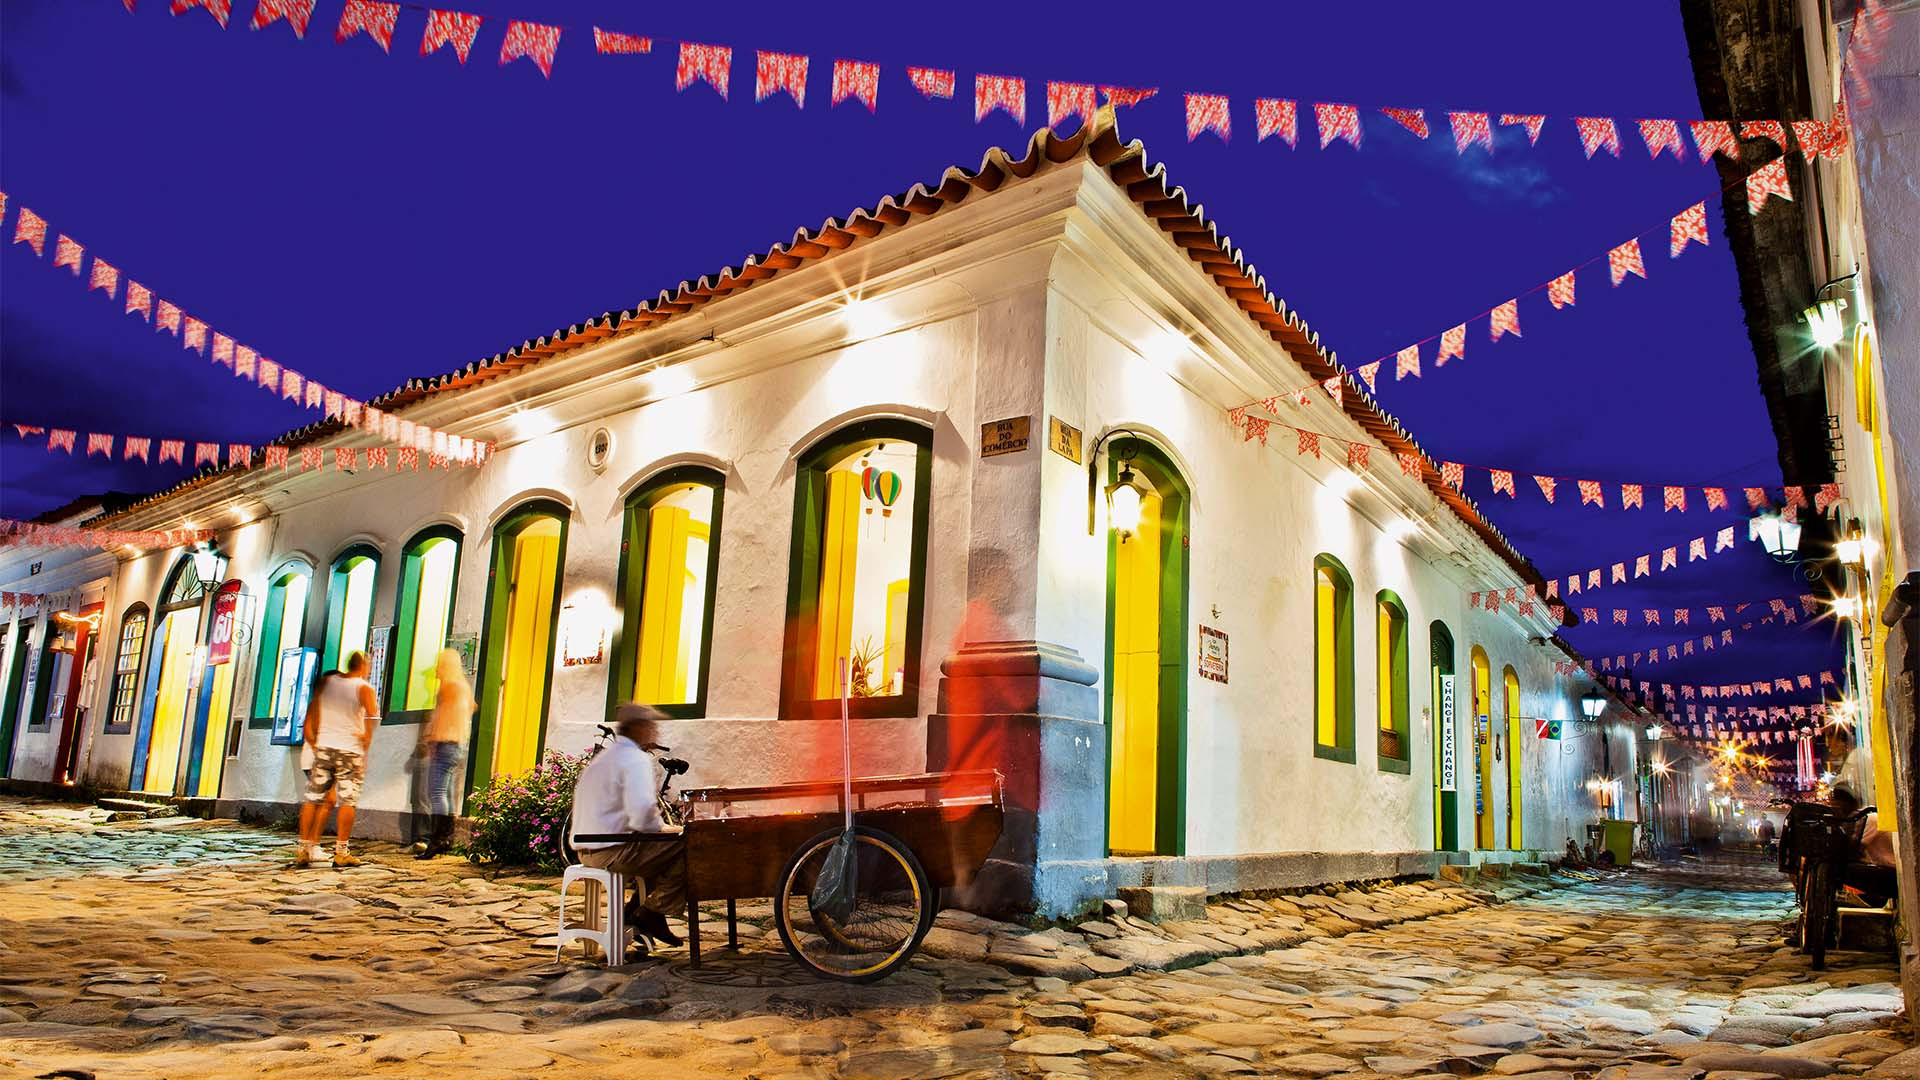 Photograph of Paraty's historic buildings and streets